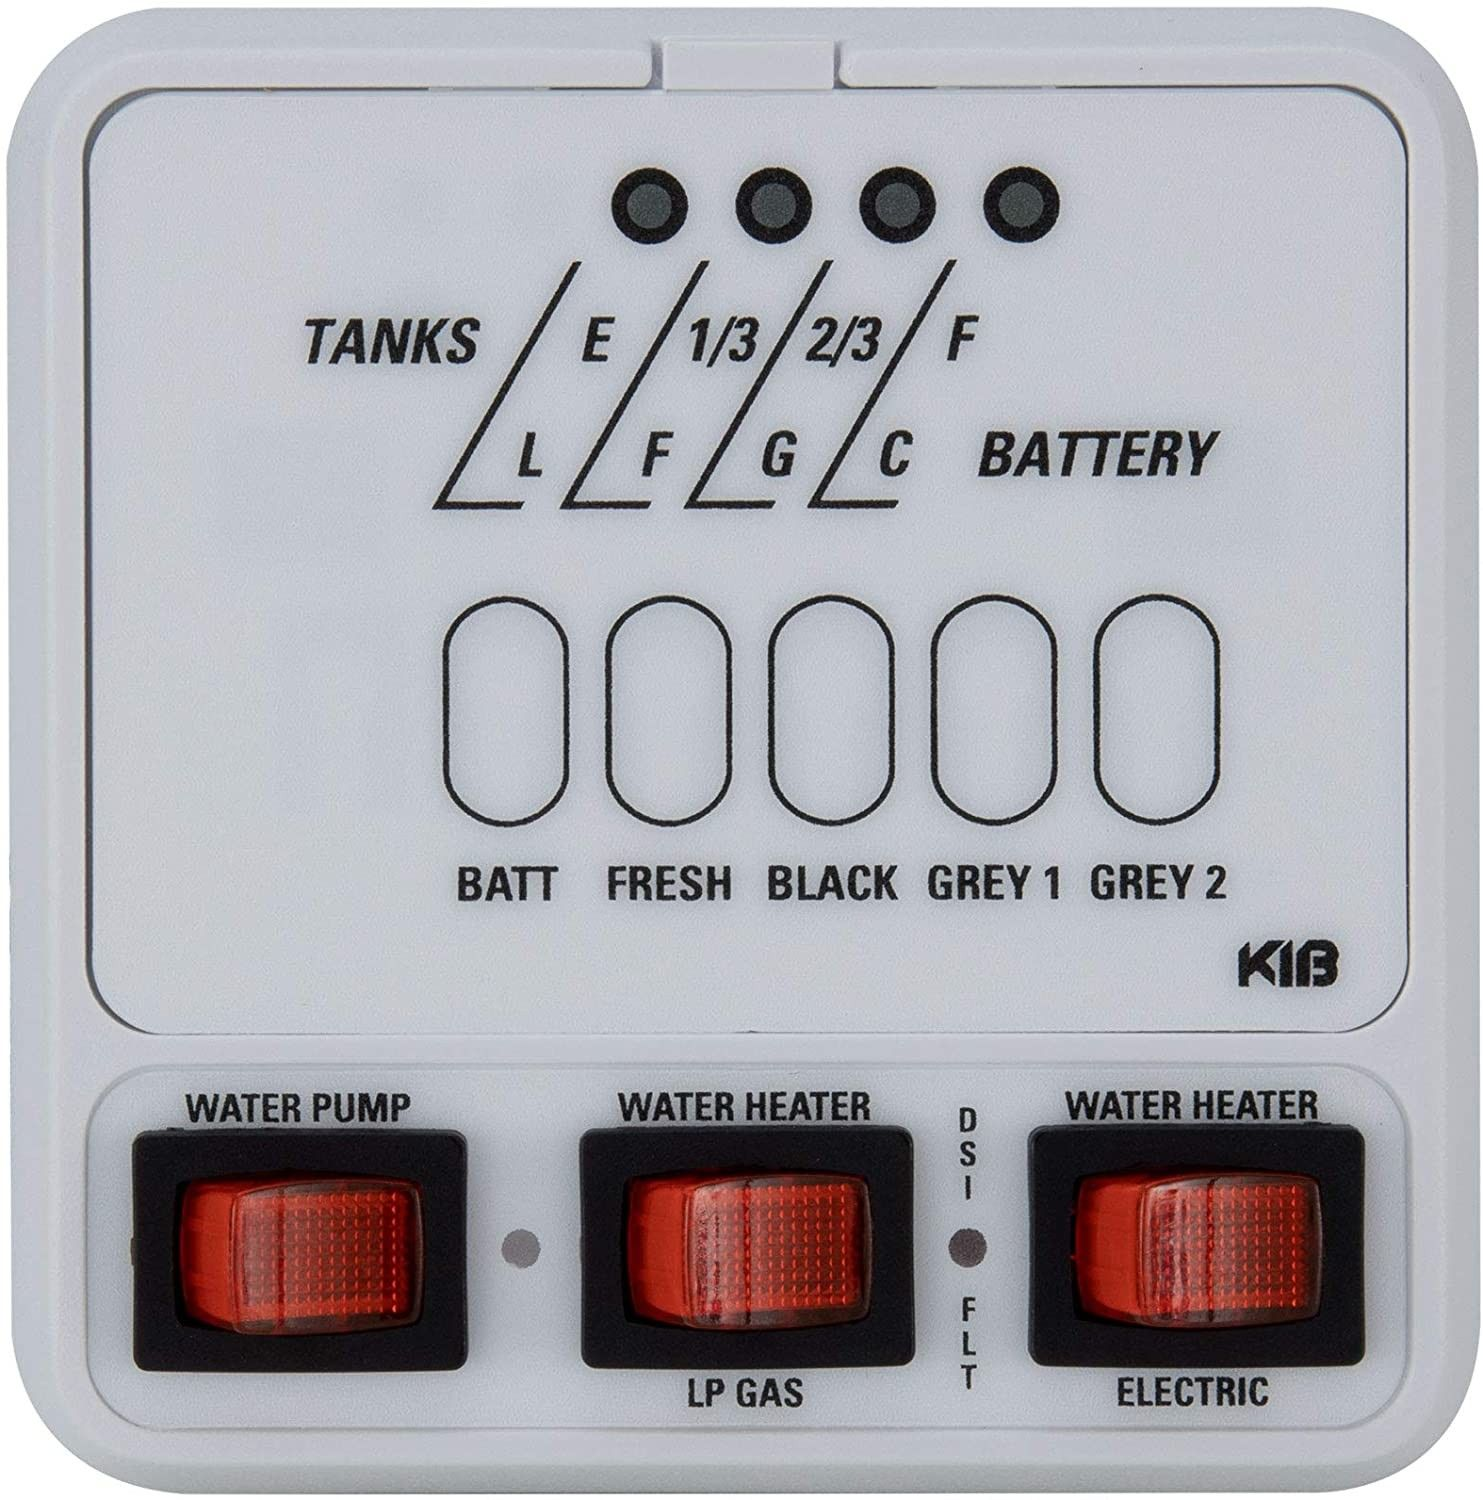 Kib Micro Monitor Panel Instructions In 2020 Monitor Gas And Electric Level Sensor